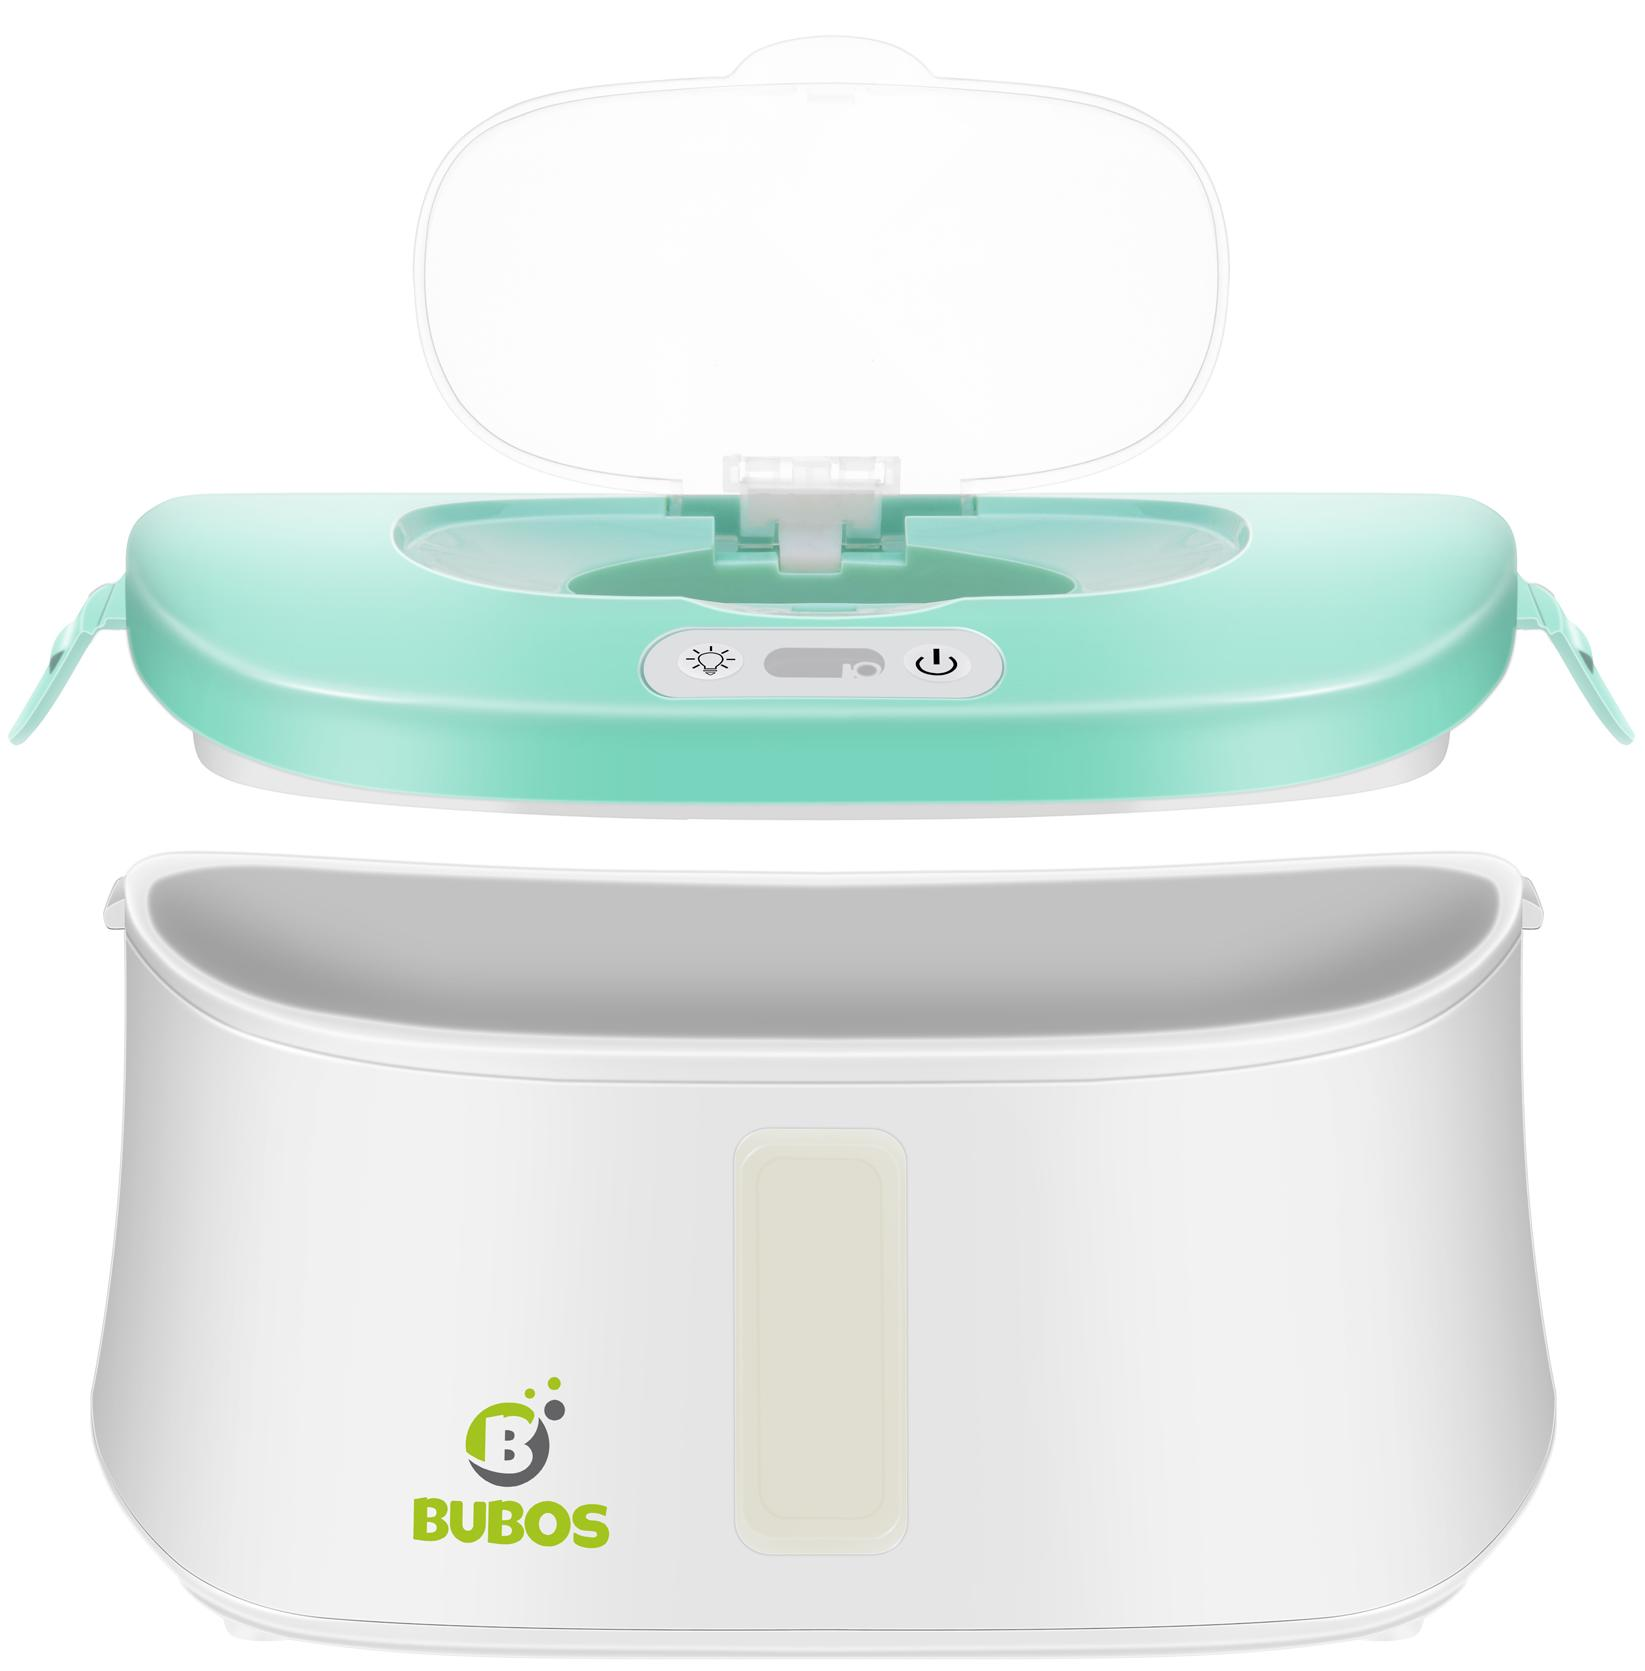 Bubos Wipe Warmer and Wet Wipes Dispenser